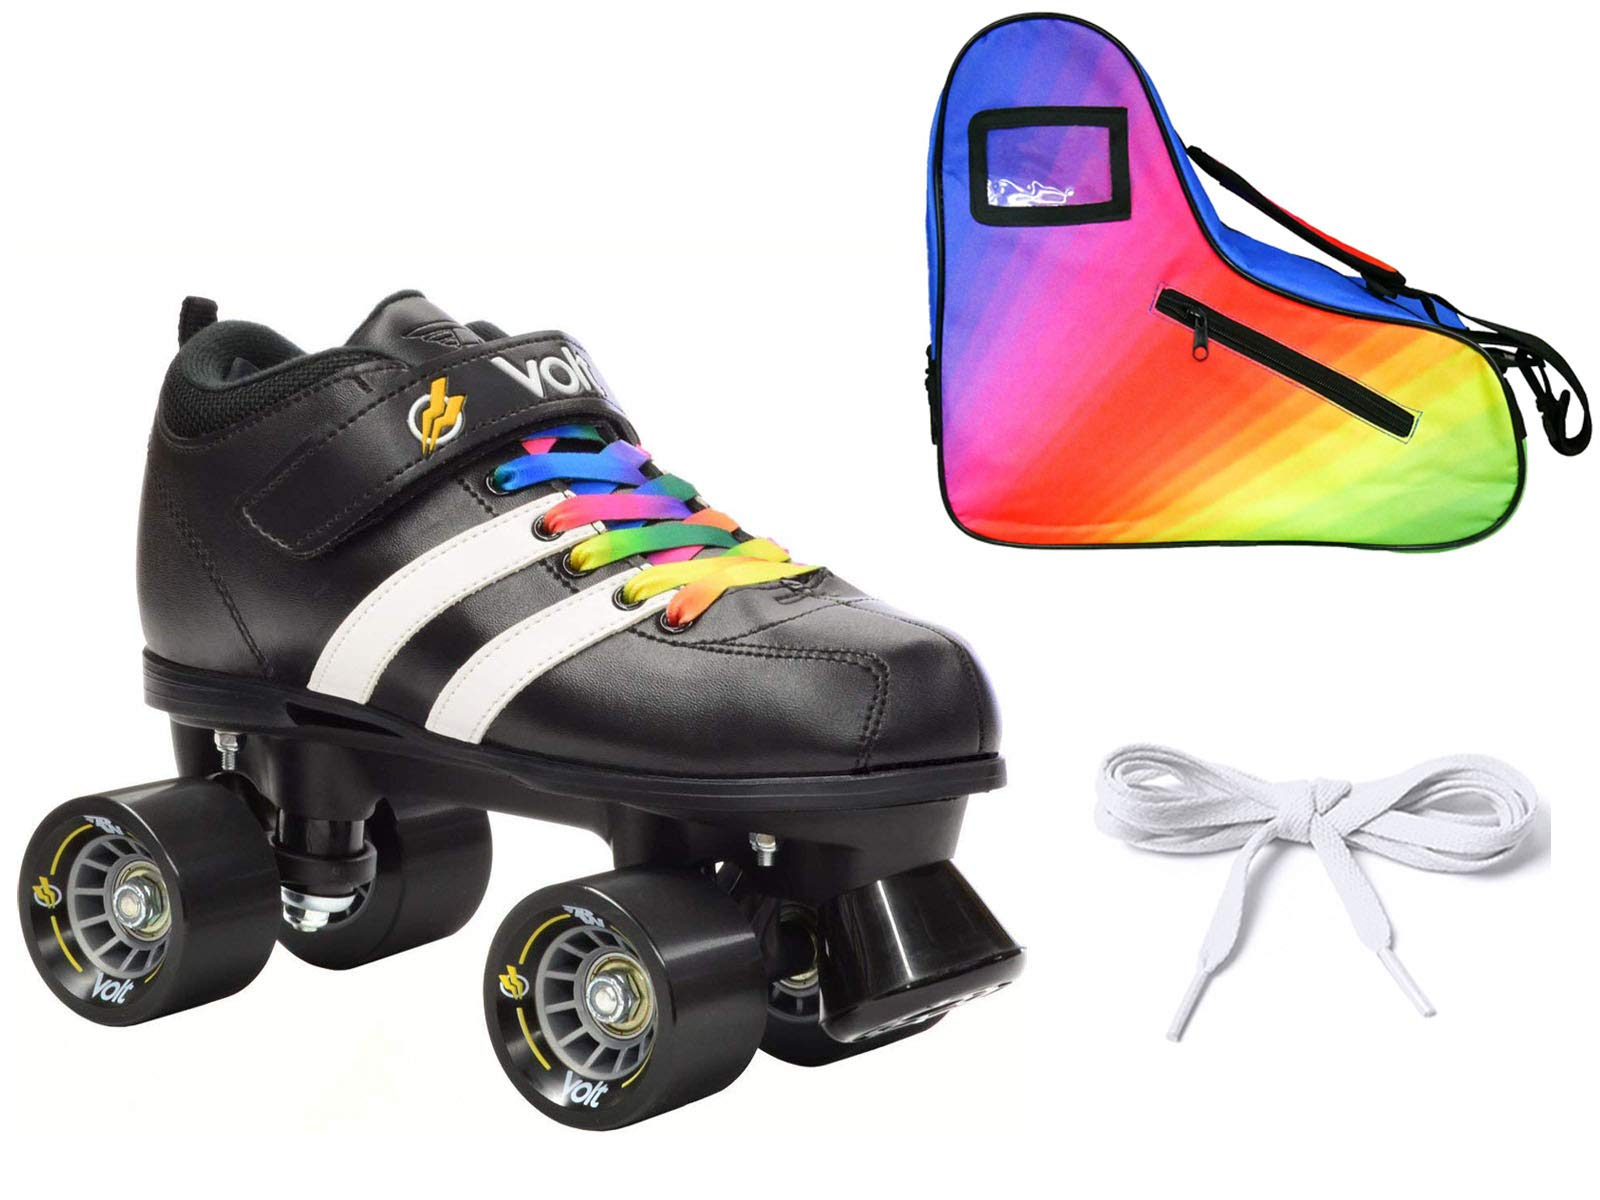 Riedell Volt Quad Derby Speed Roller Skate 3 Pc Rainbow Bundle with Bag! (Youth 1)